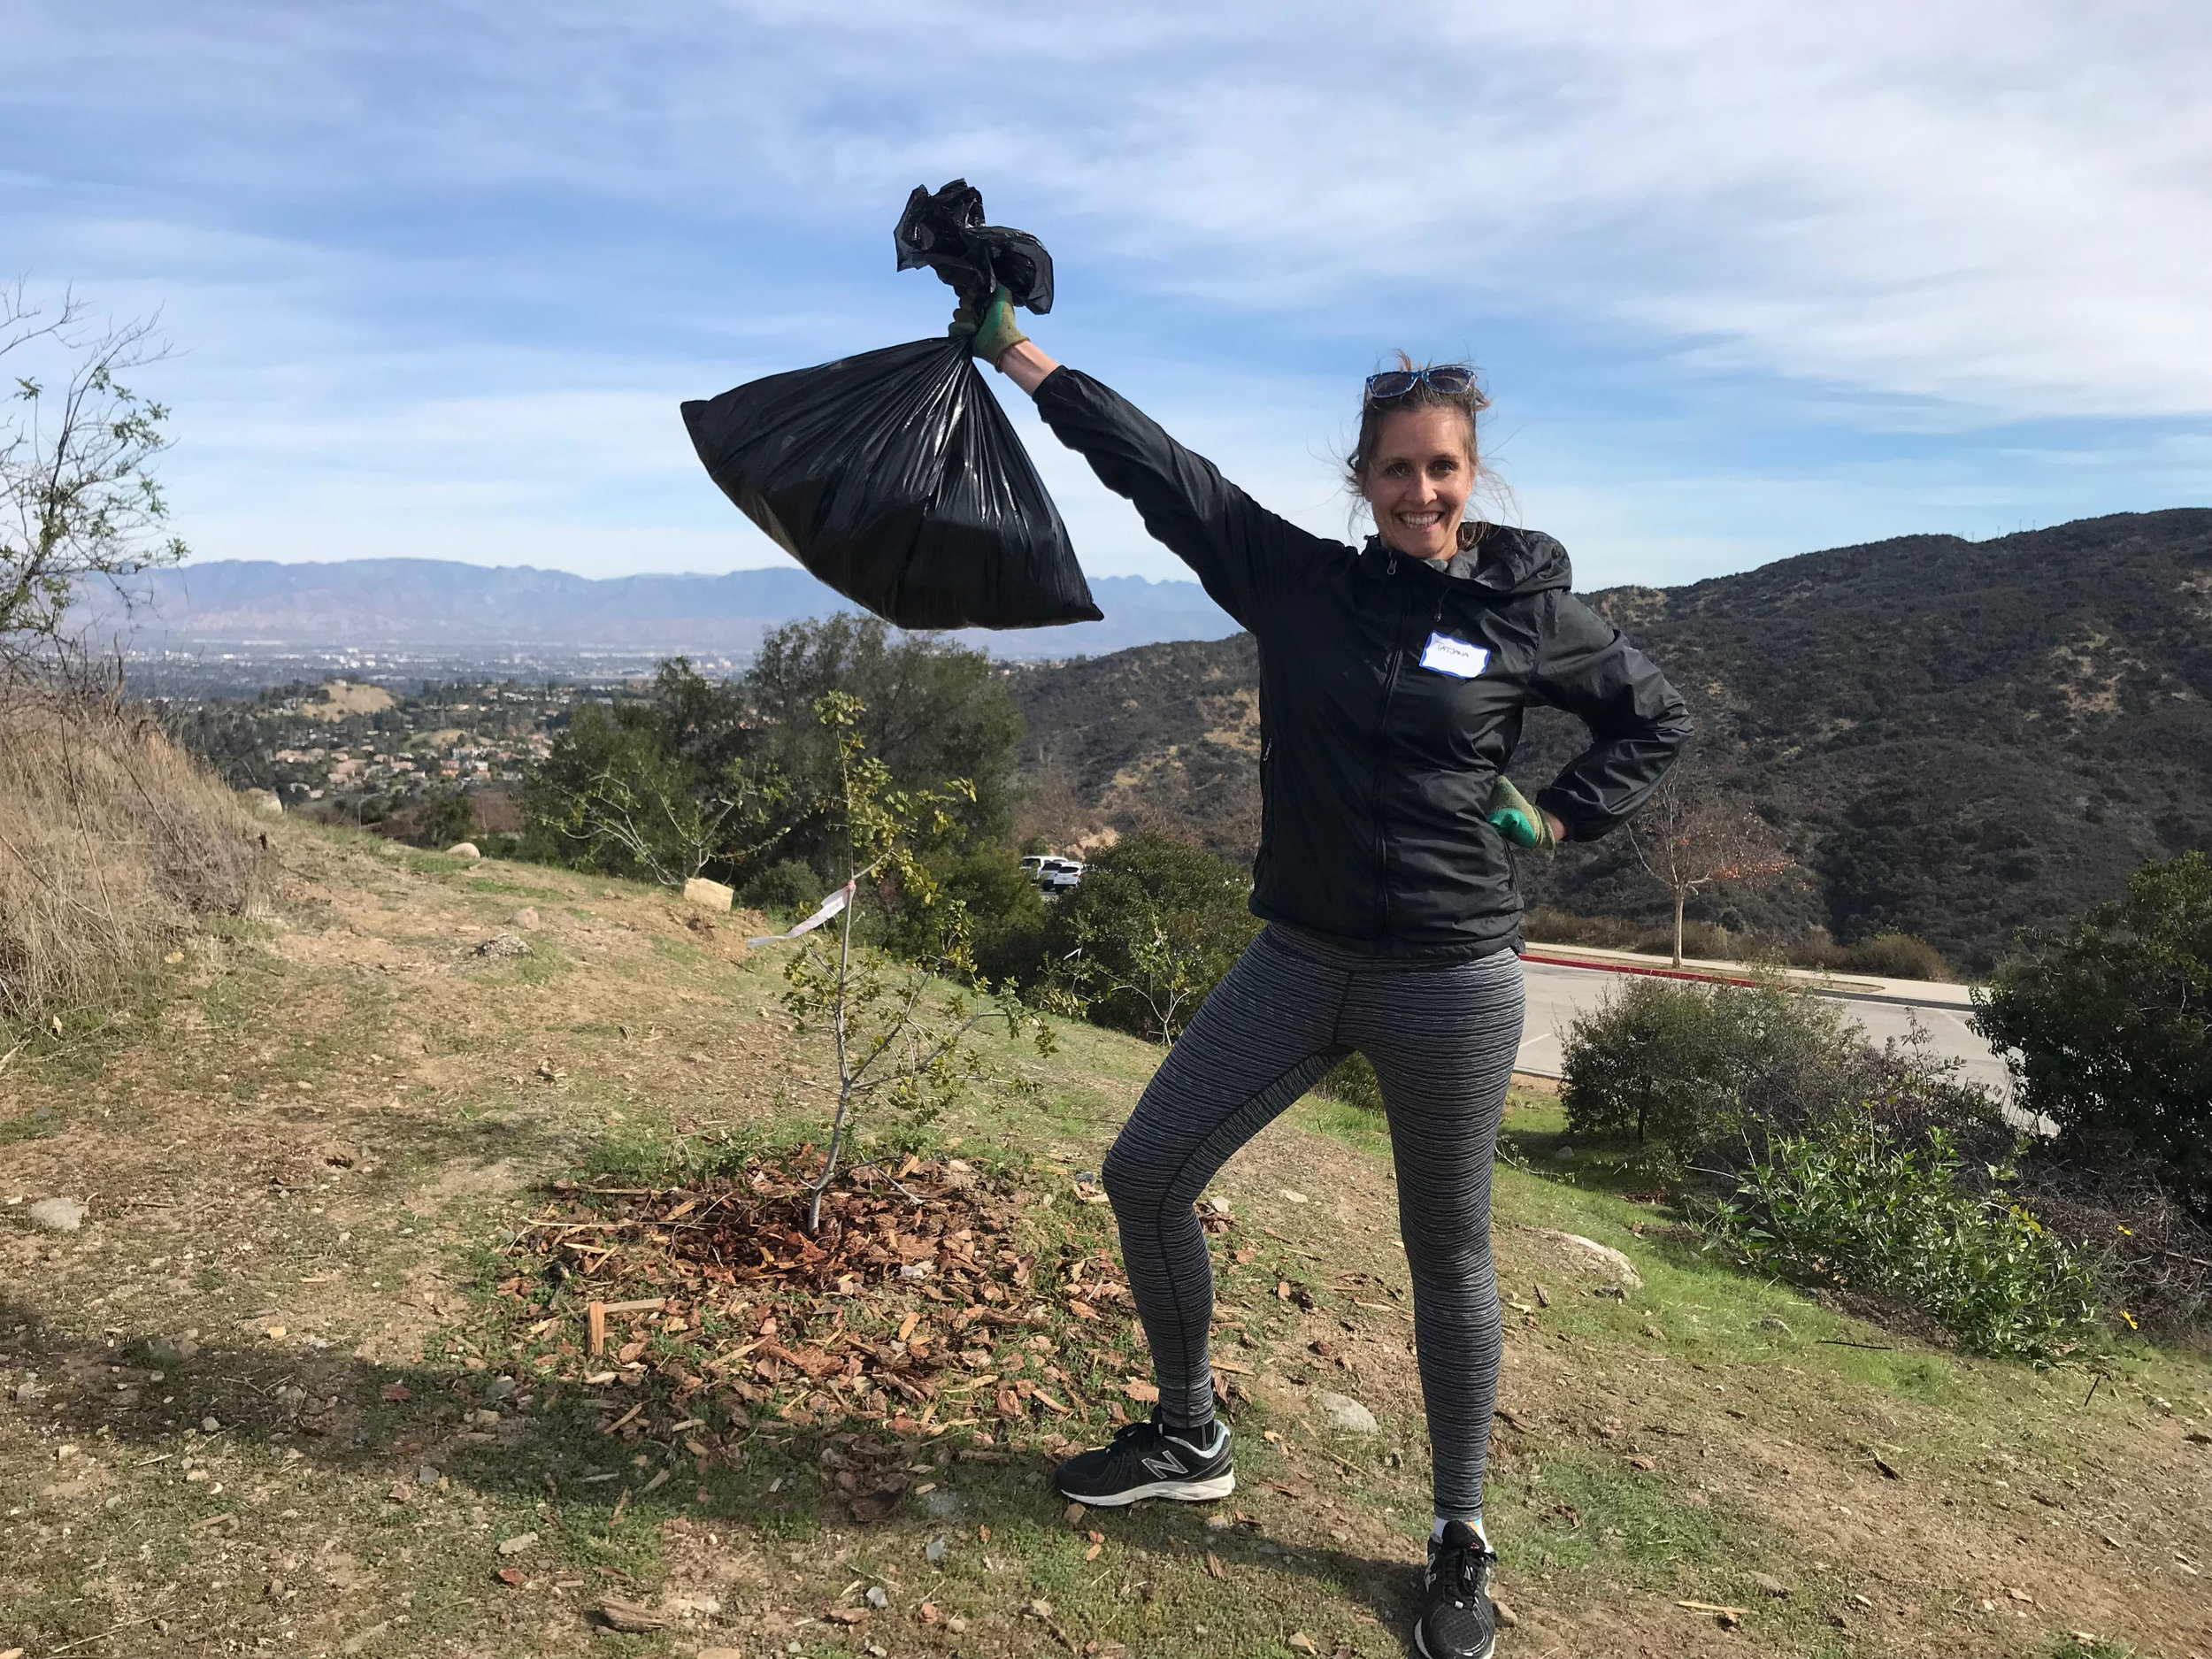 Tatjana did the dirty work and picked up all the trash in the surrounding landscape.